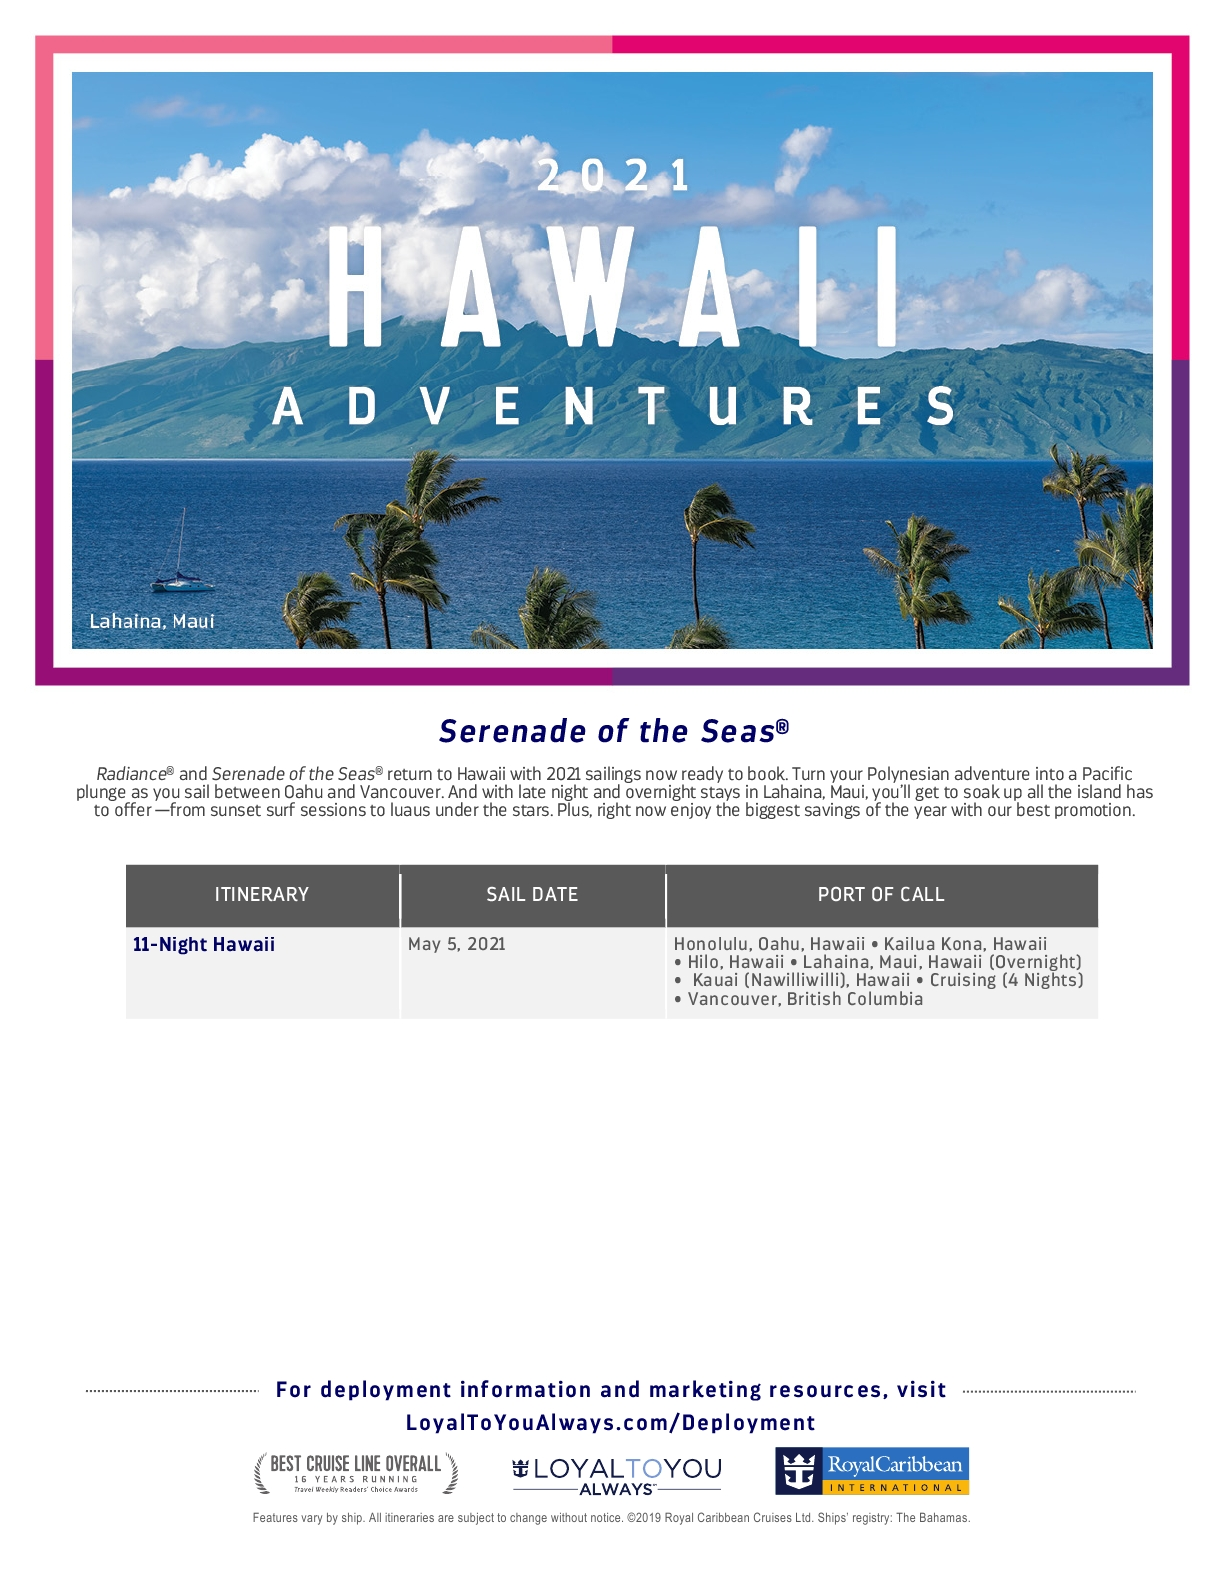 Microsoft Word 19070634 SR Hawaiidocx